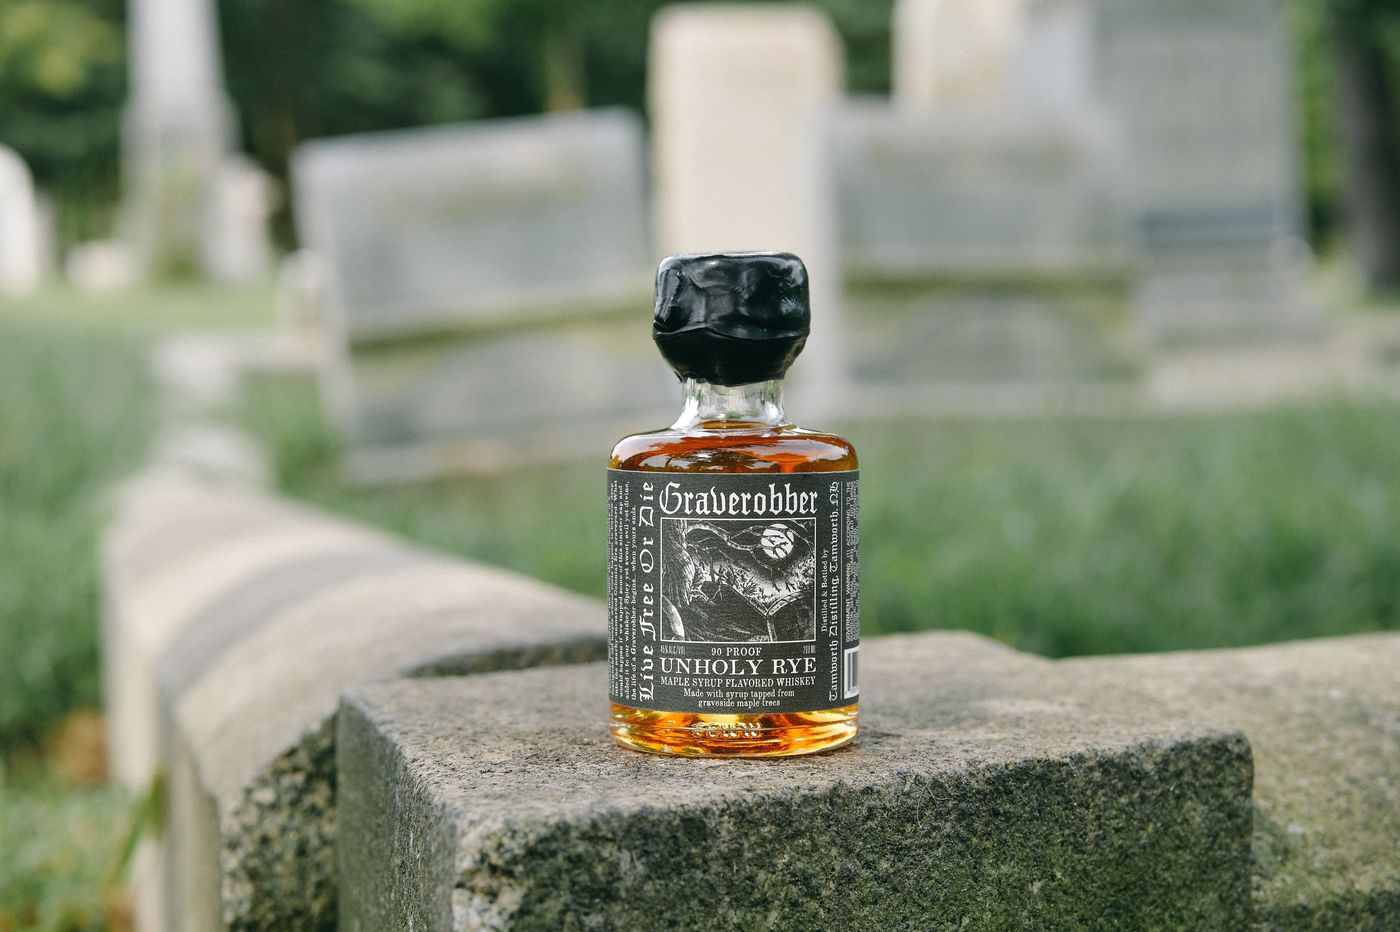 This maple-infused spirit comes from beyond the grave — literally